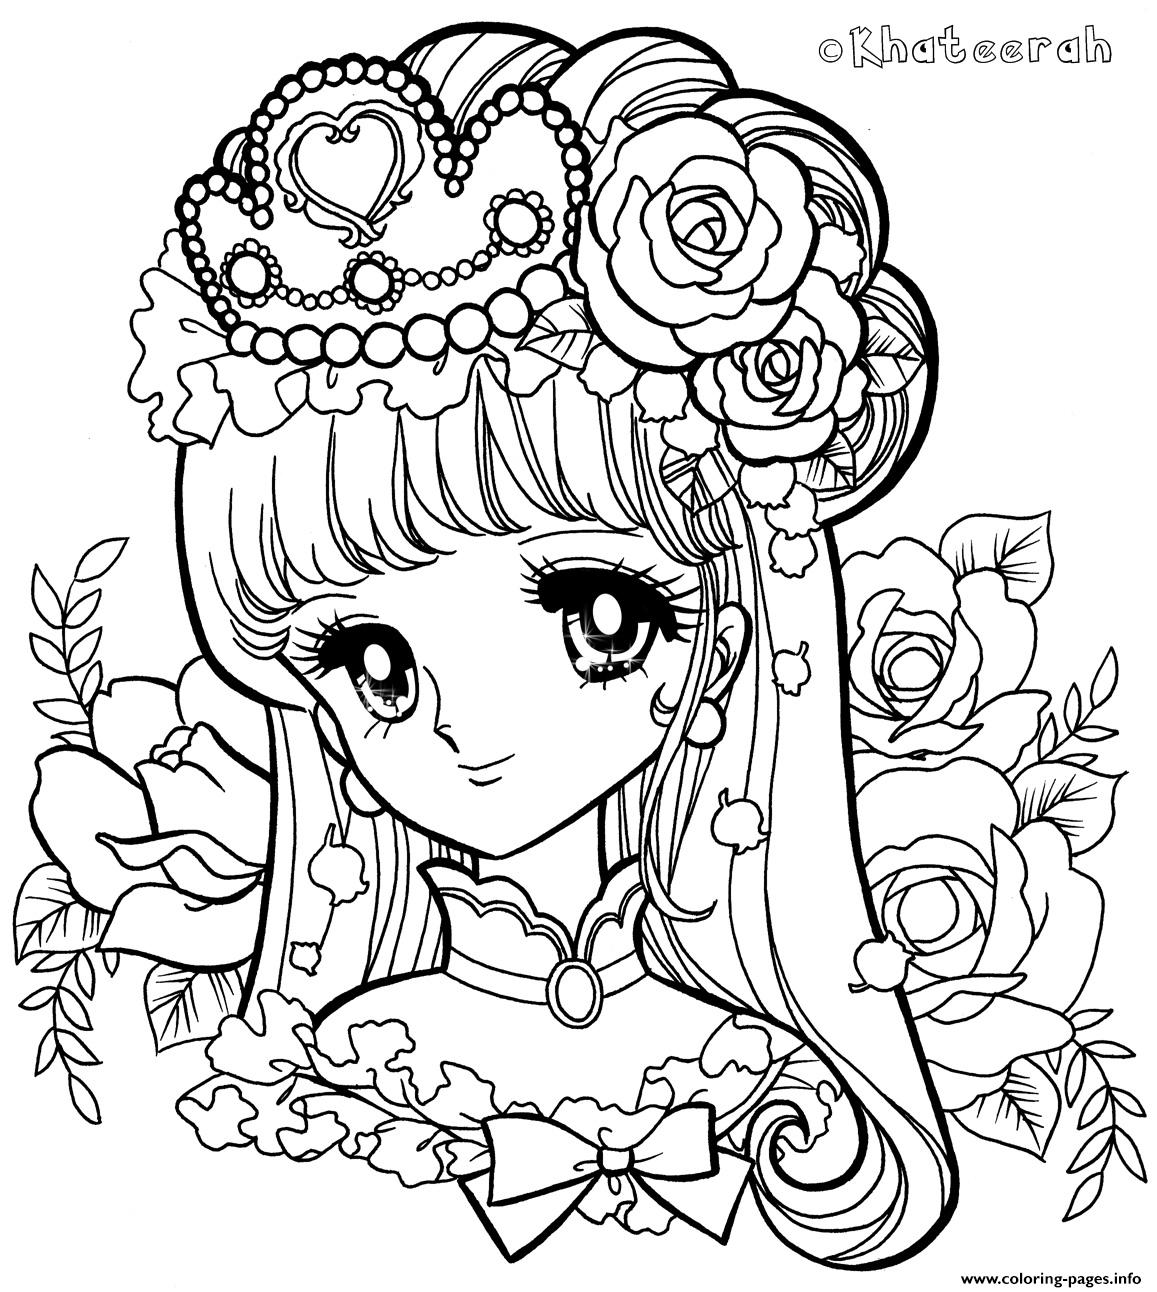 Glitter Force Queen coloring pages